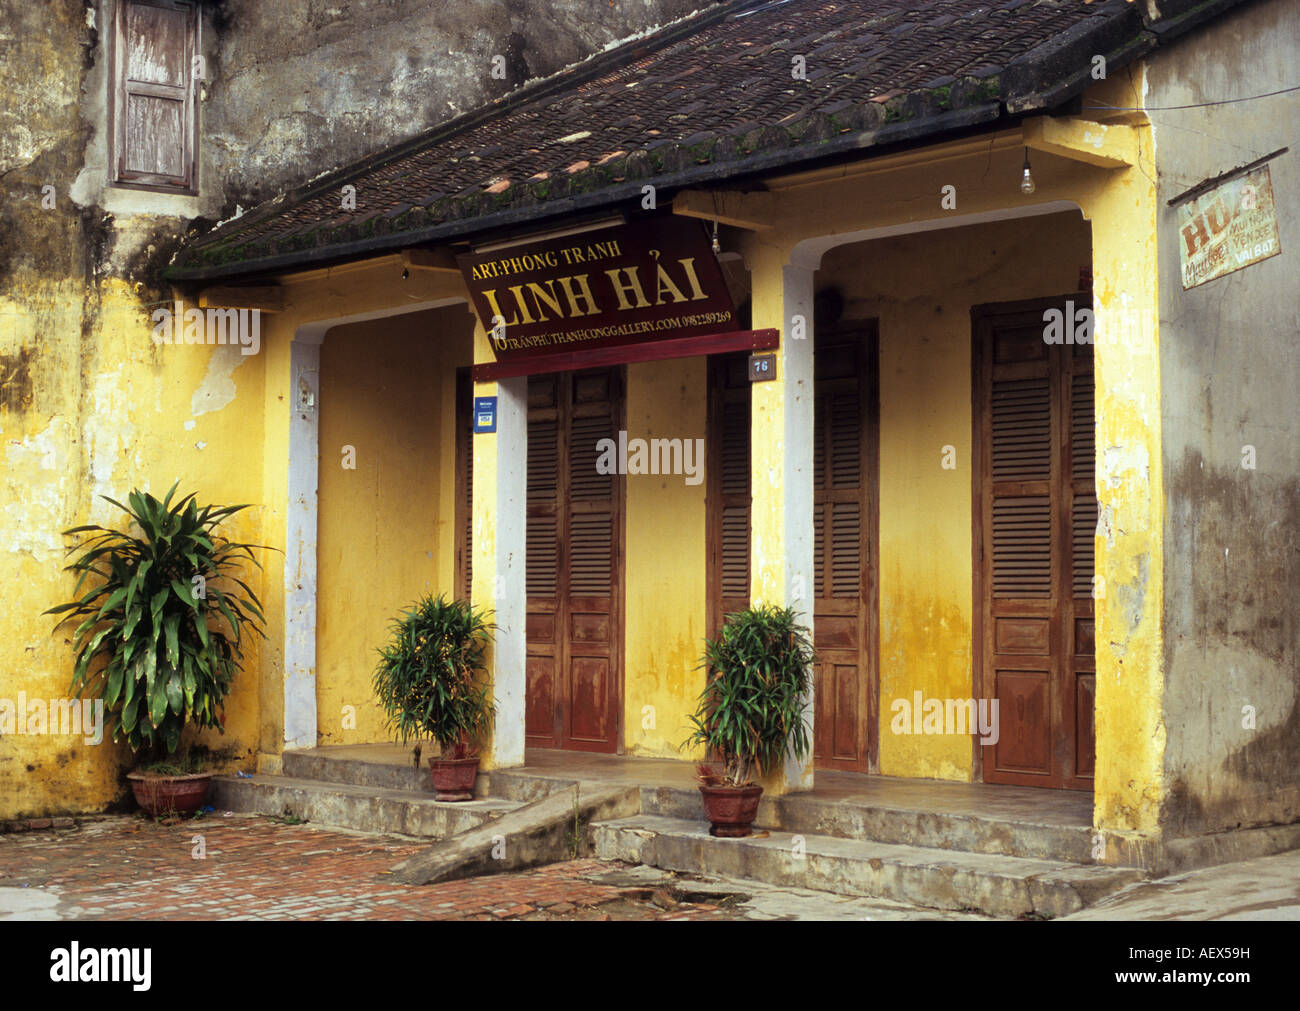 Street frontage of an old traditional shophouse Tran Phu St, Hoi An, Viet Nam - Stock Image